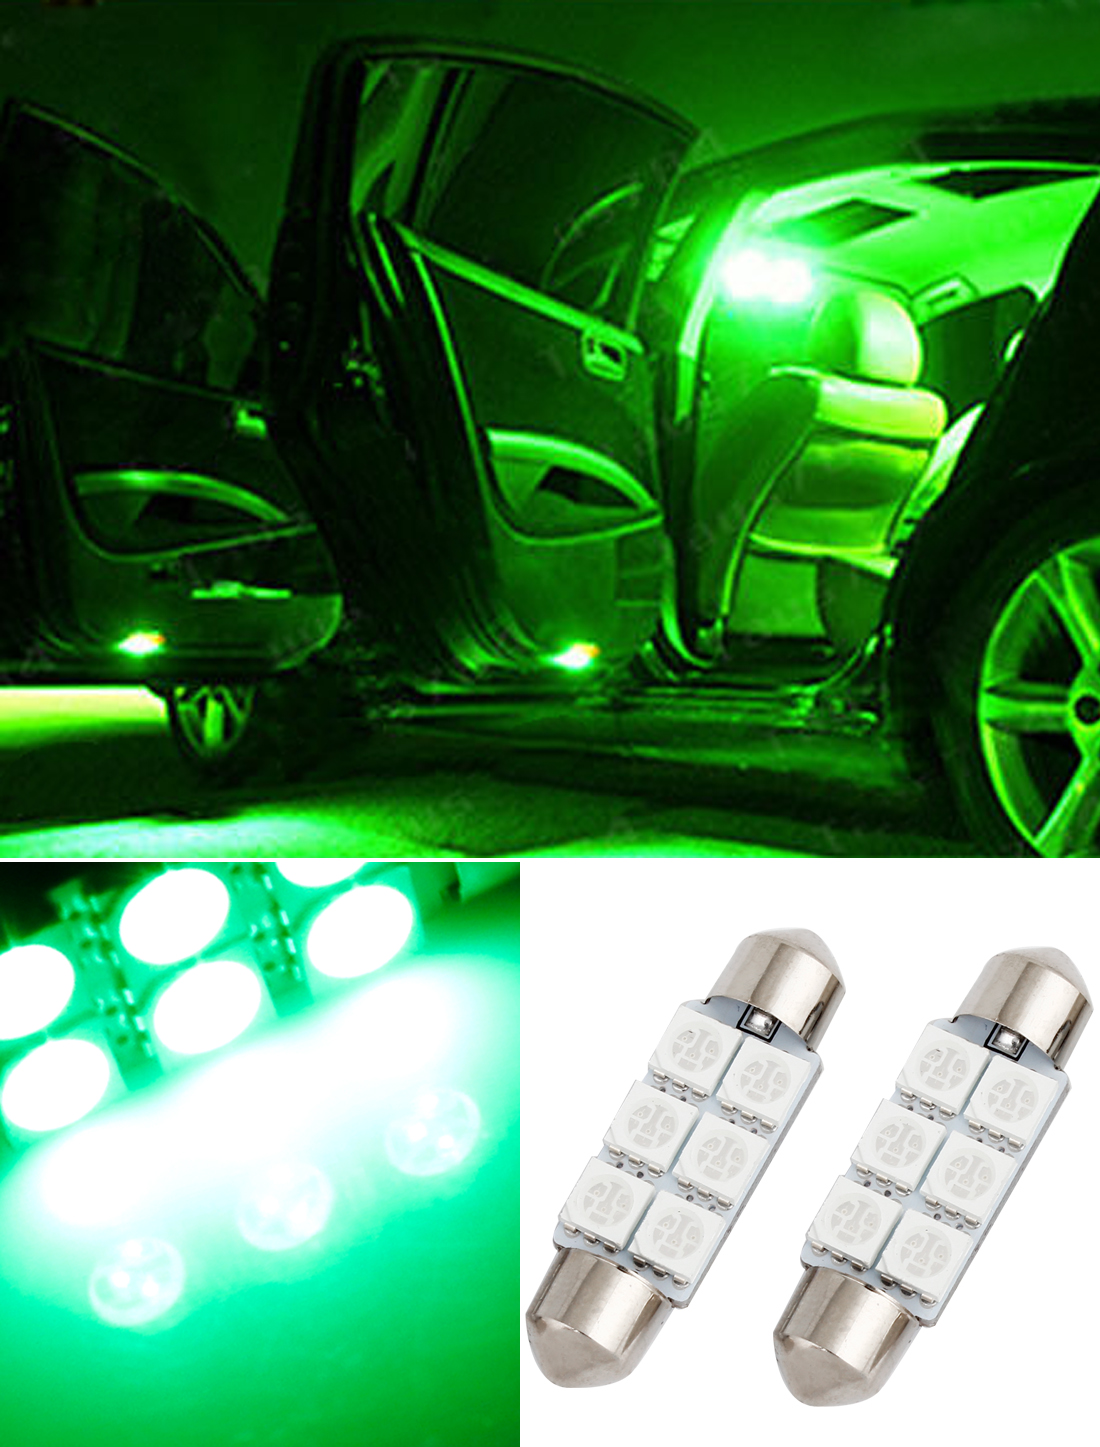 2 x green 39mm 6 led 5050 smd festoon dome car light interior lamp bulb 12v new ebay. Black Bedroom Furniture Sets. Home Design Ideas